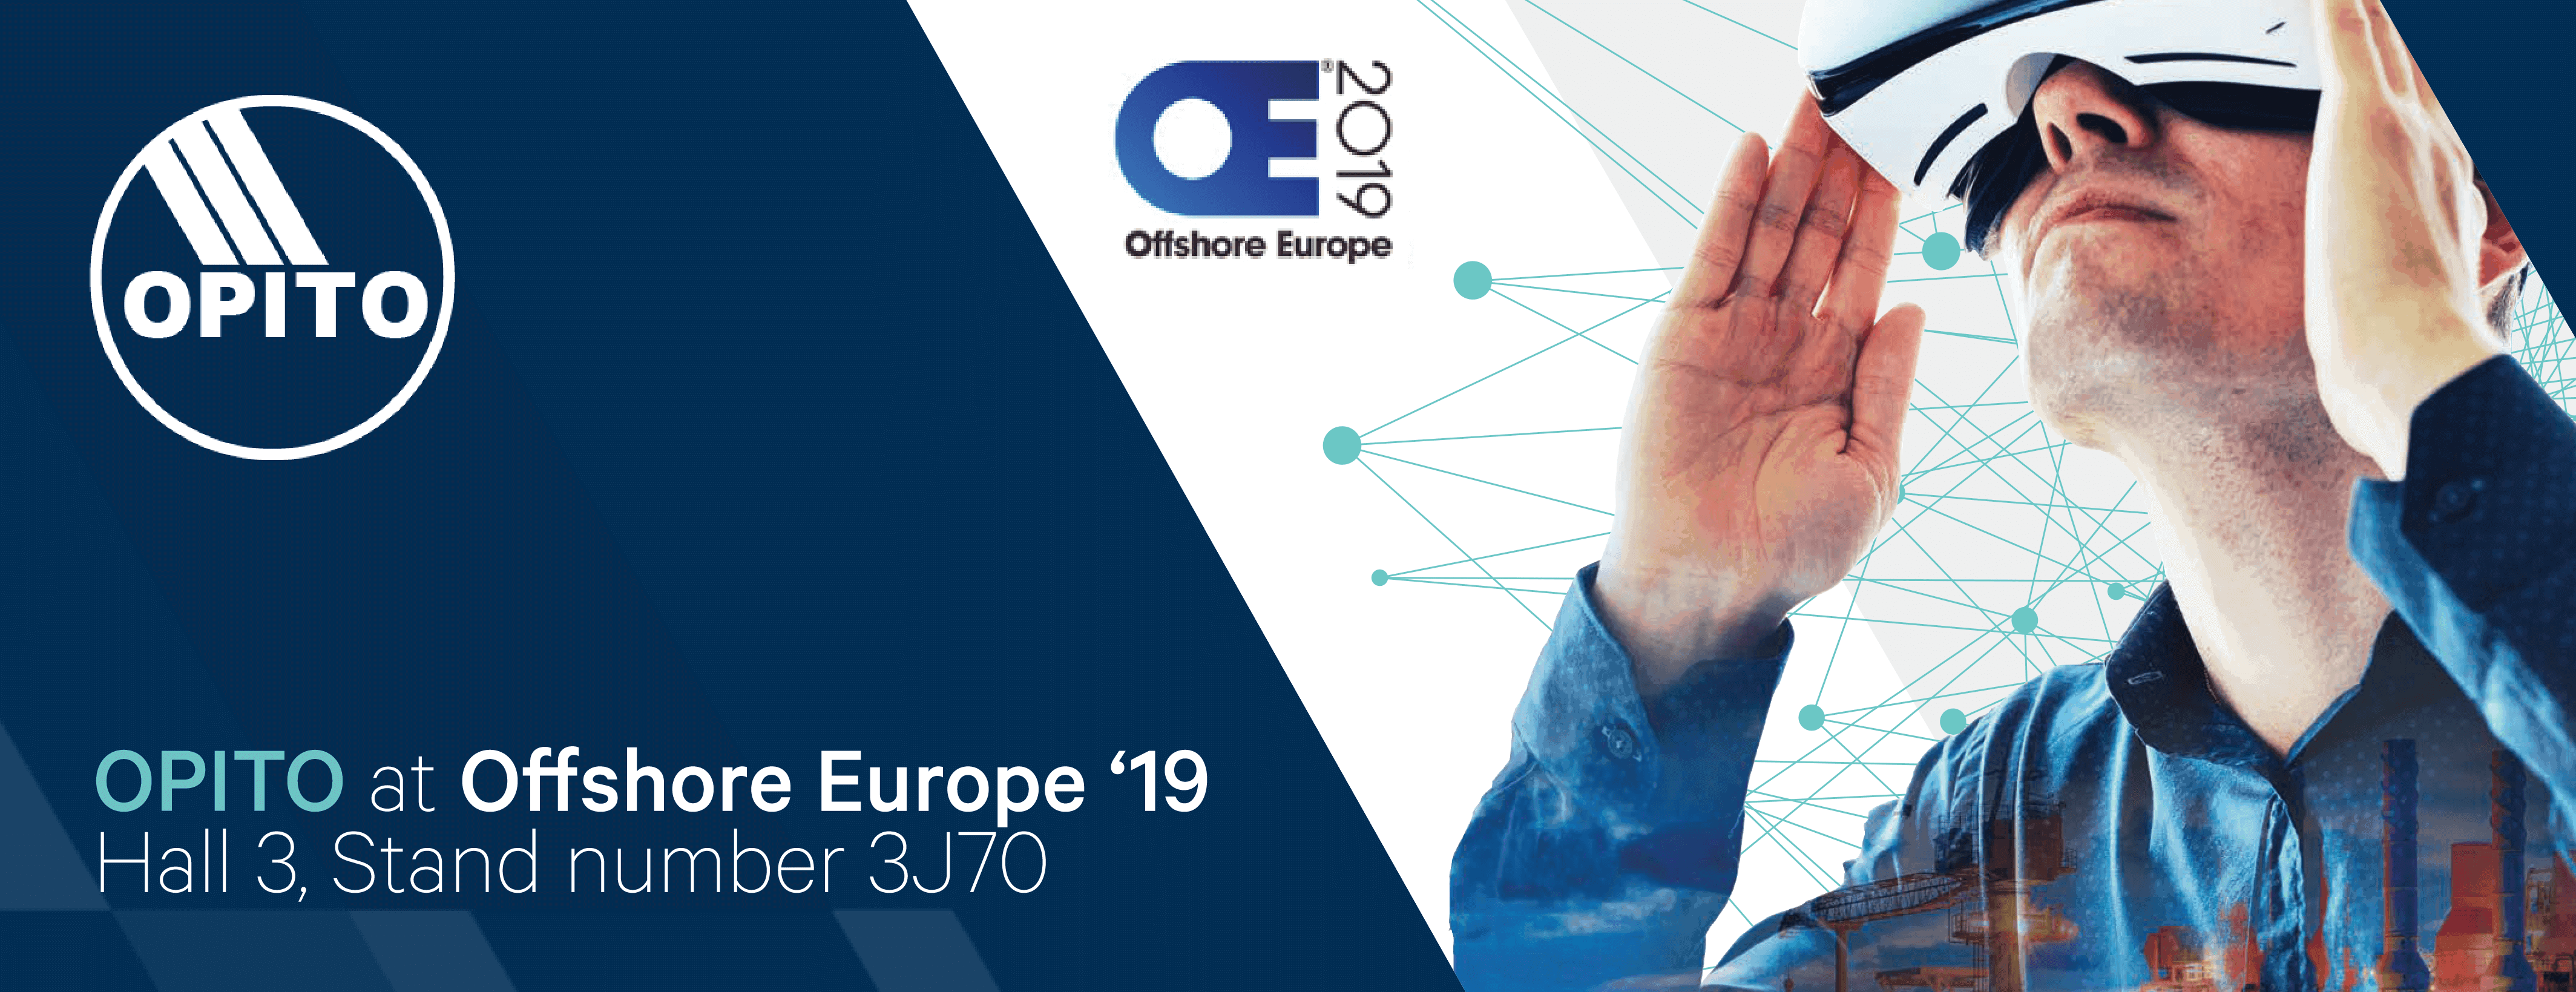 OPITO Offshore Europe 2019